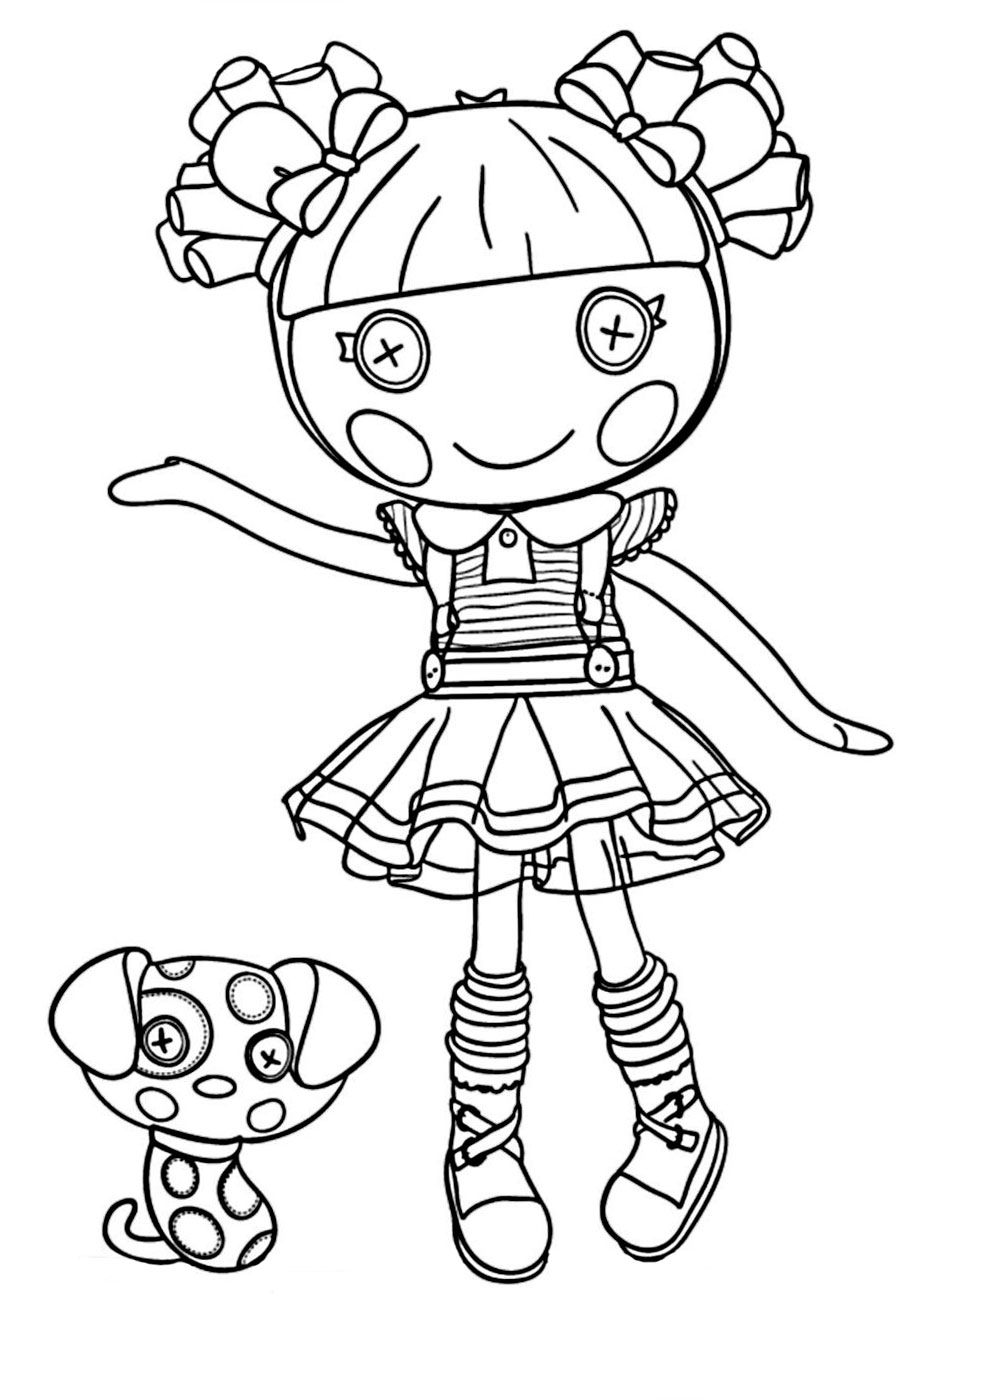 lalaloopsy pictures lalaloopsy coloring pages mermaid coloring pages pictures lalaloopsy